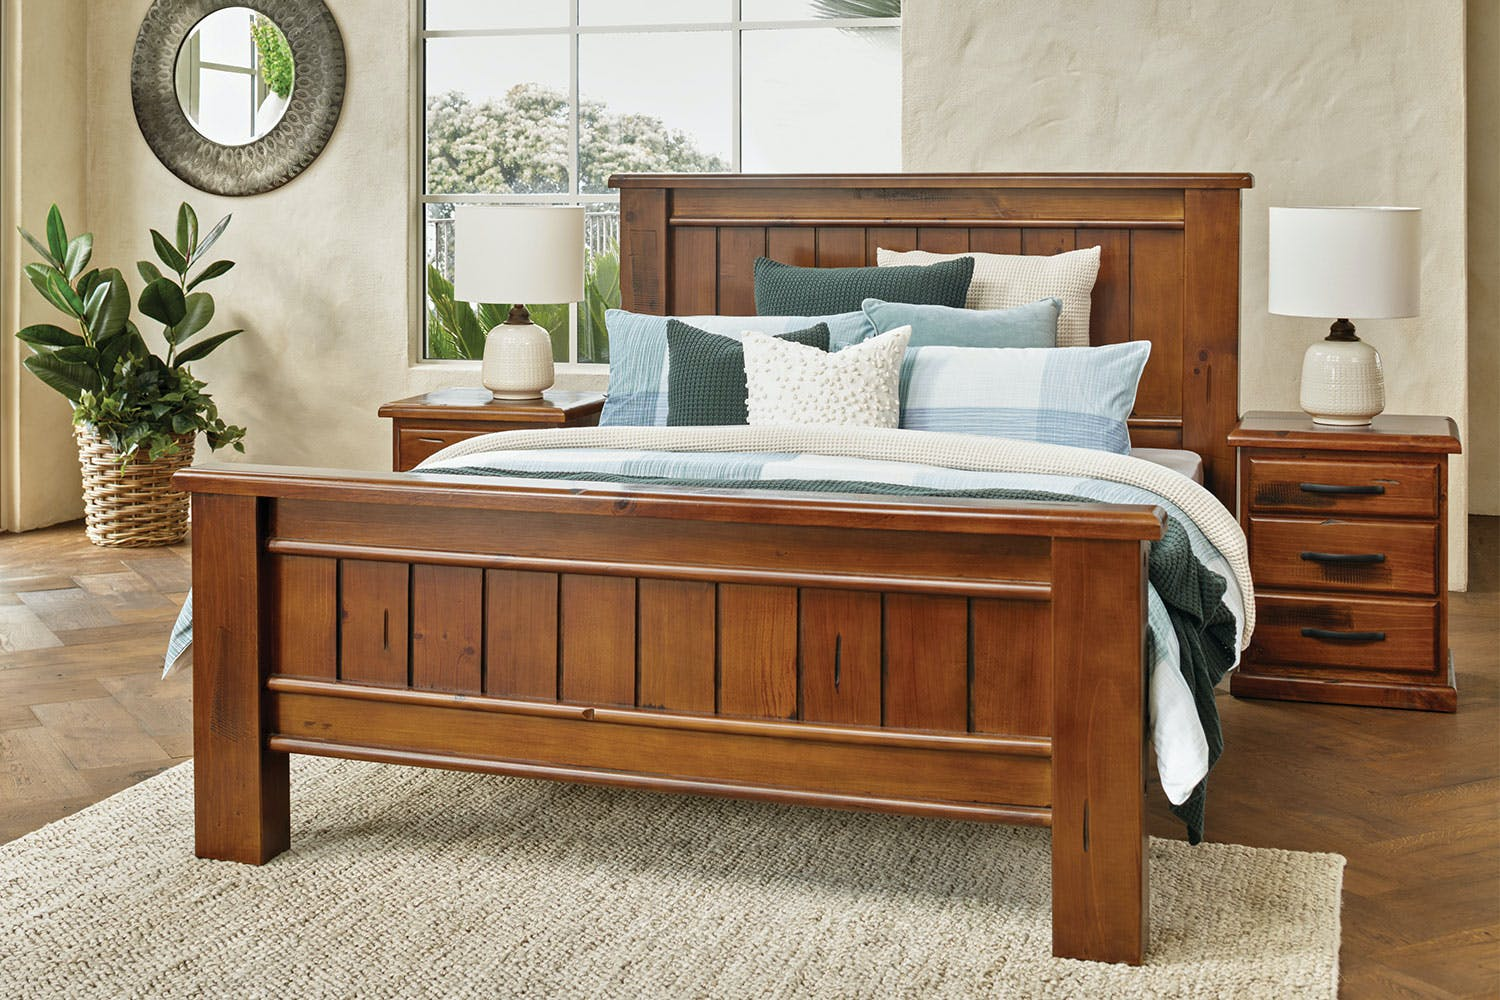 Image of Rye King Bed Frame by John Young Furniture